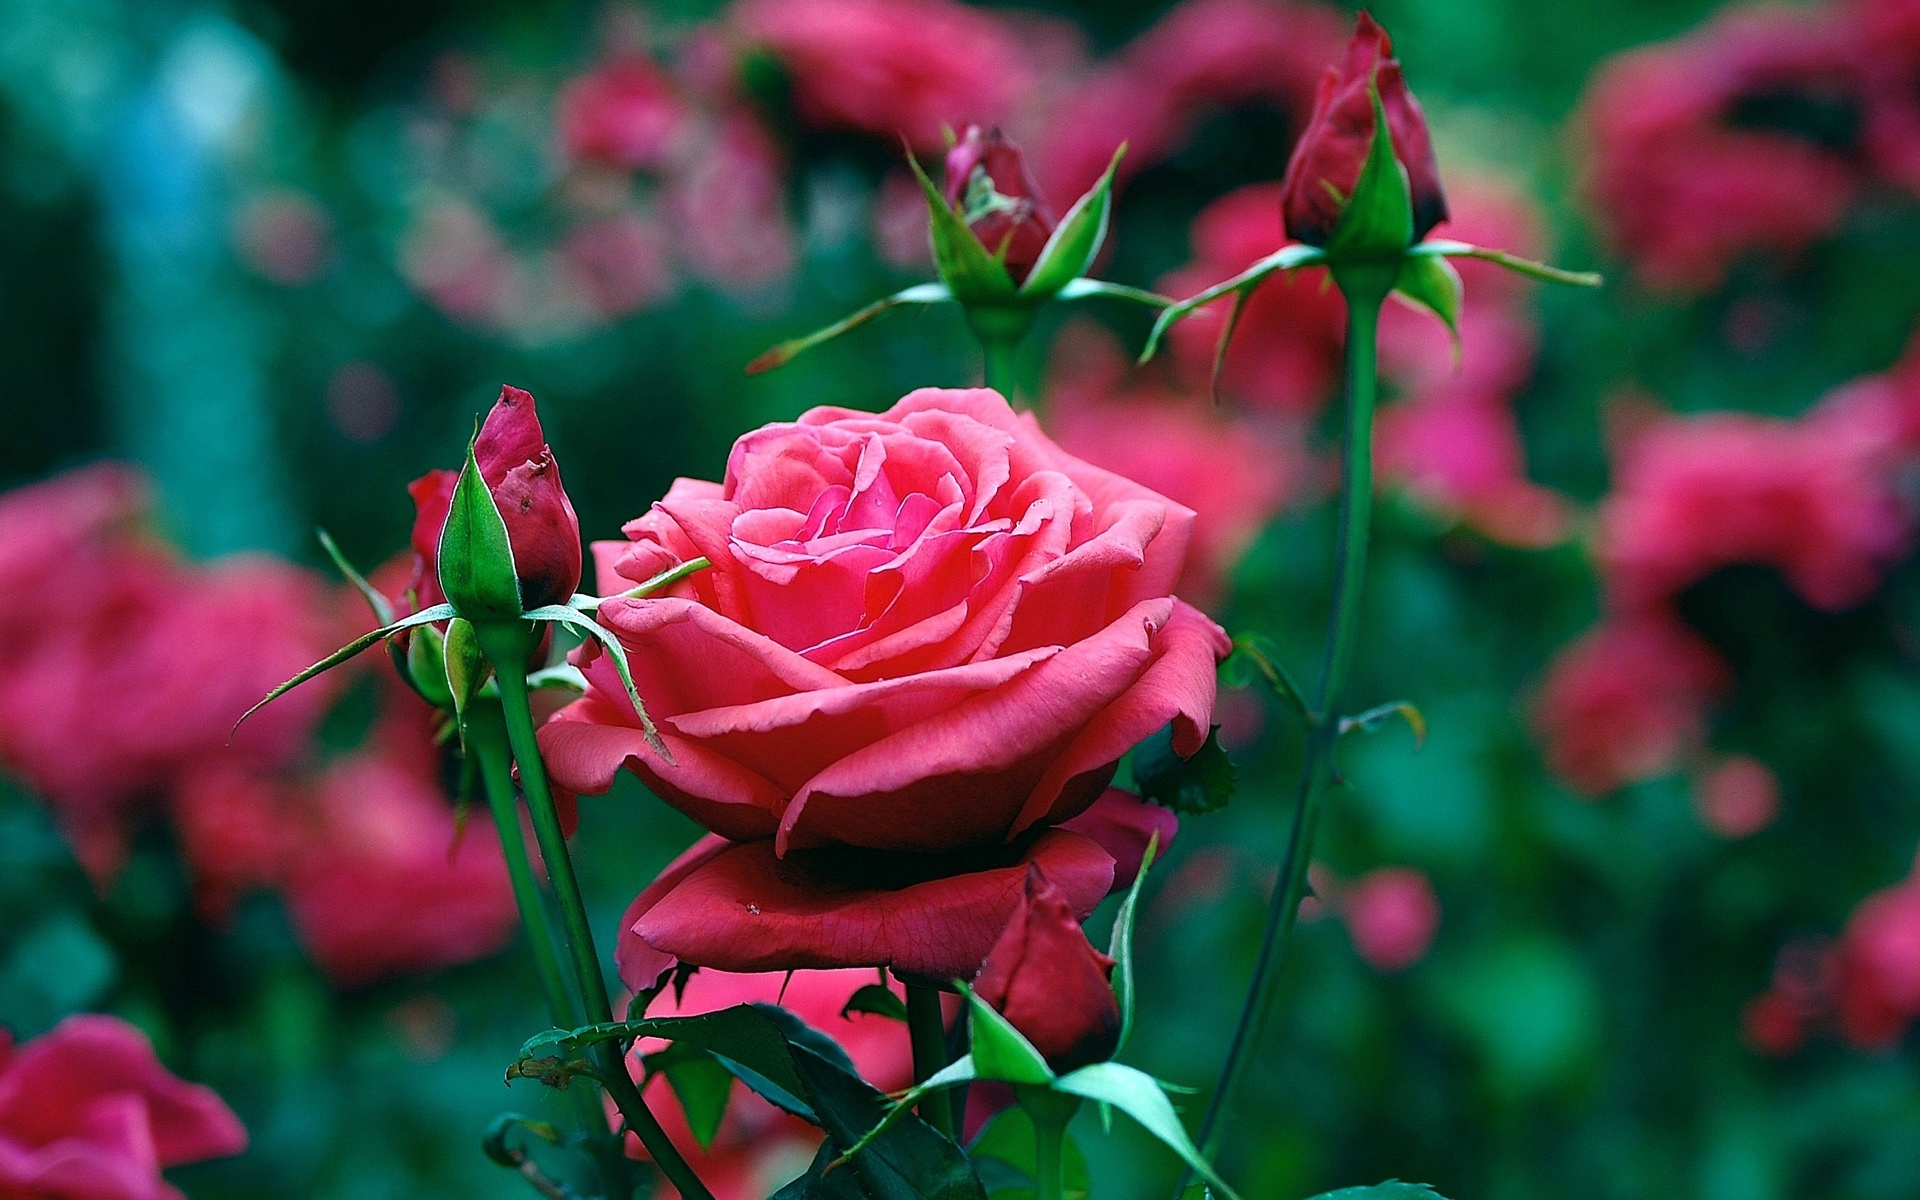 Wallpaper Garden Of Red Roses Close Up 1920x1200 HD Picture Image